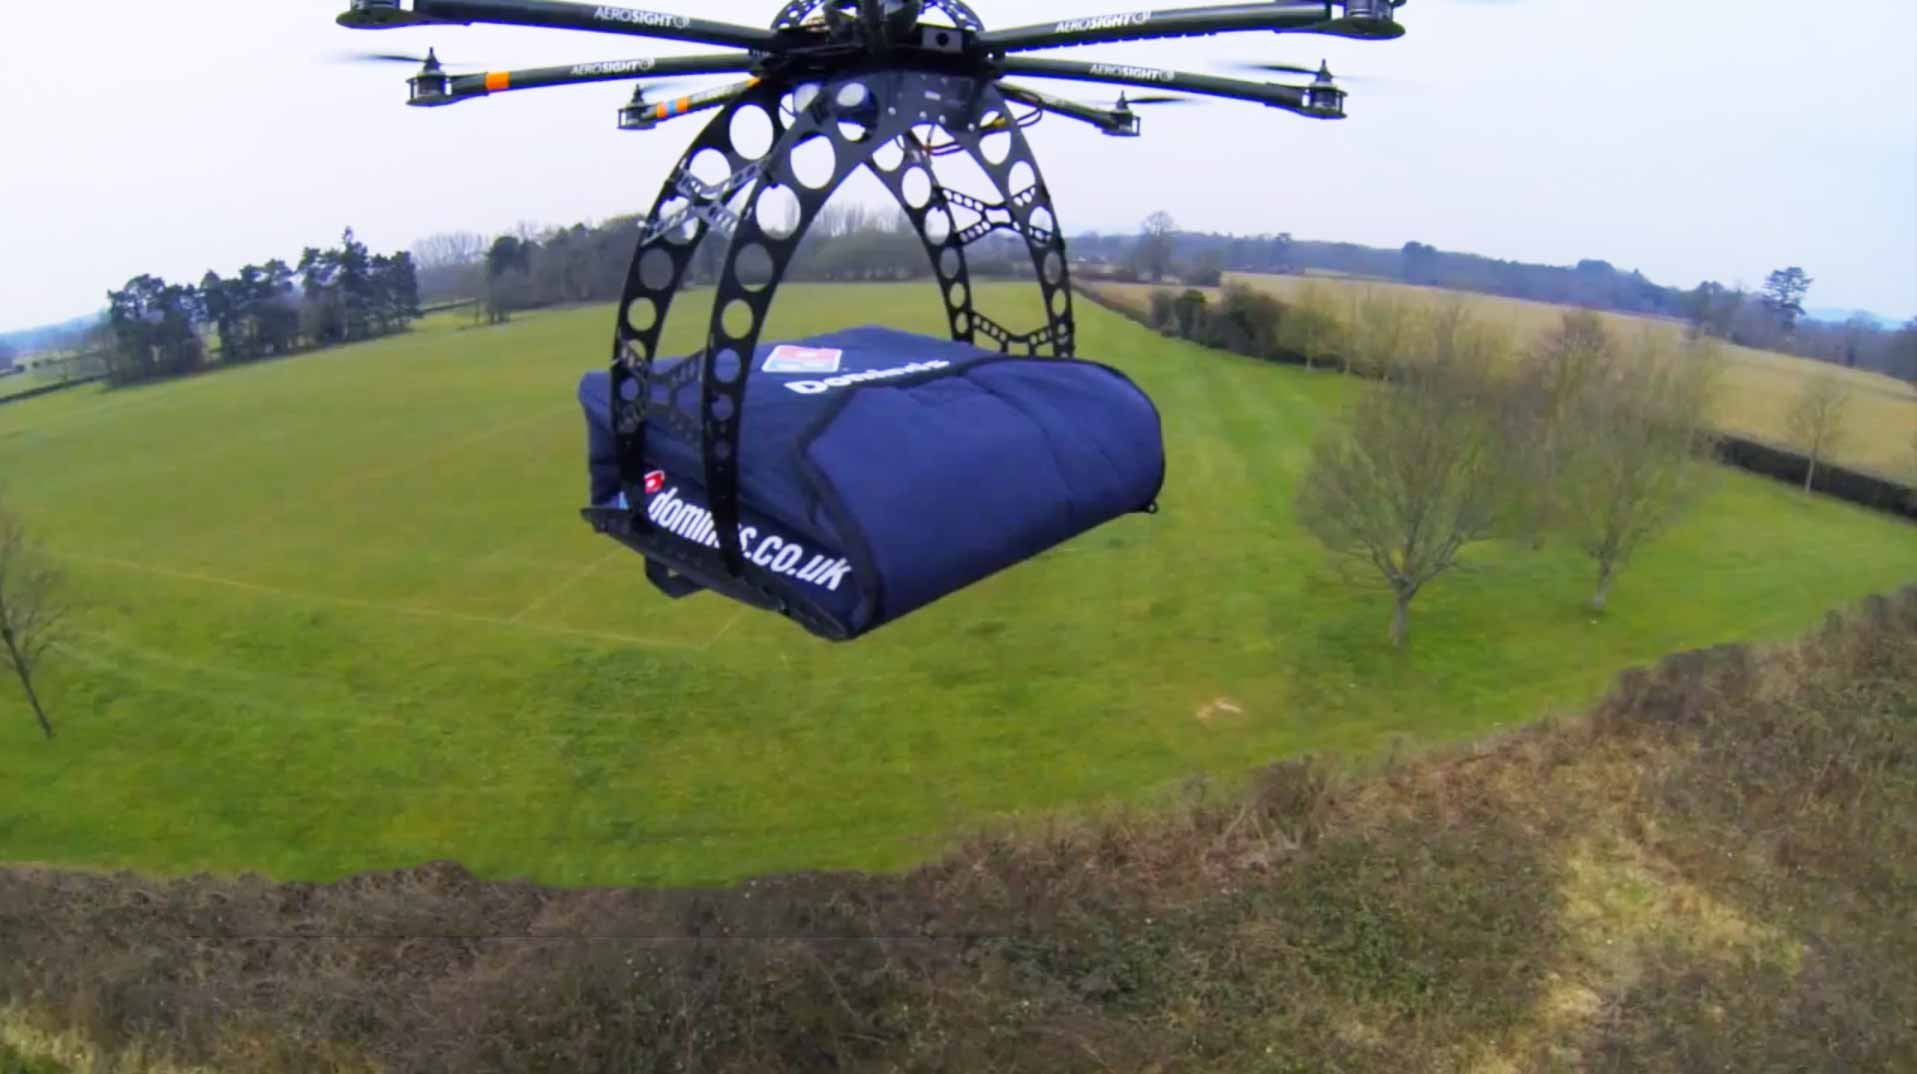 Dominoes delivery drone